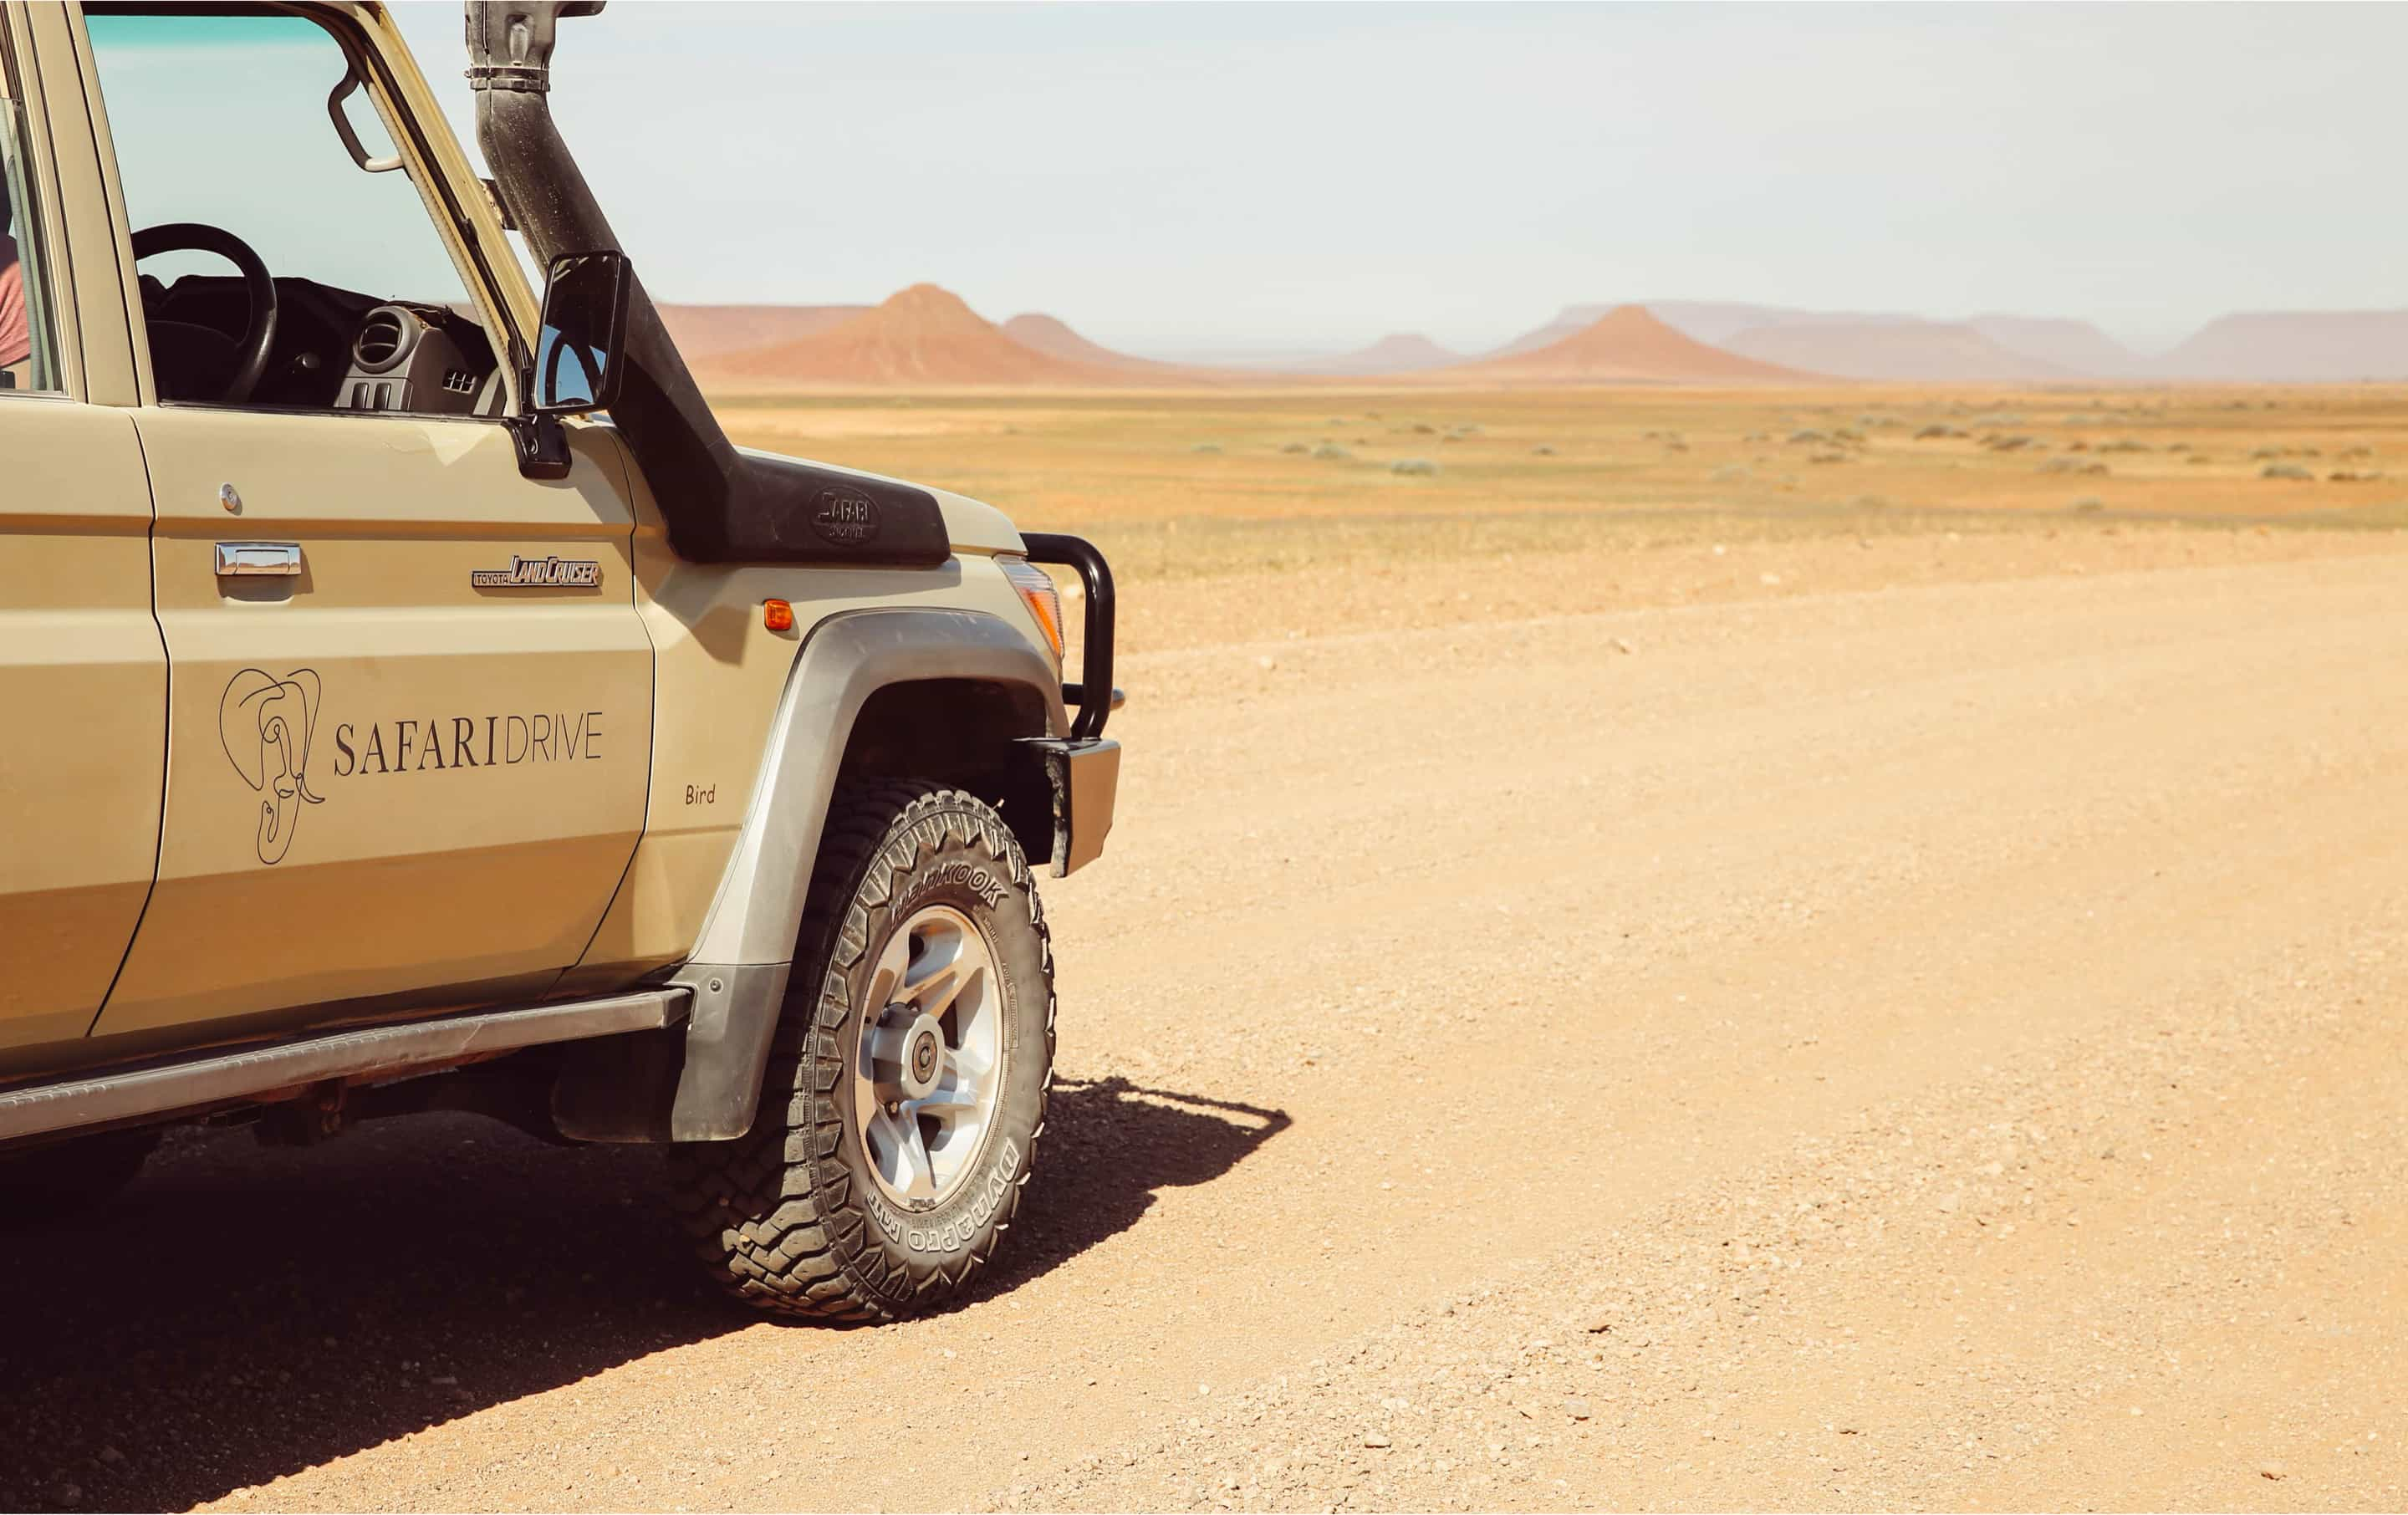 Landscape image of the new Safari Drive branding on a Land cruiser in Namibia